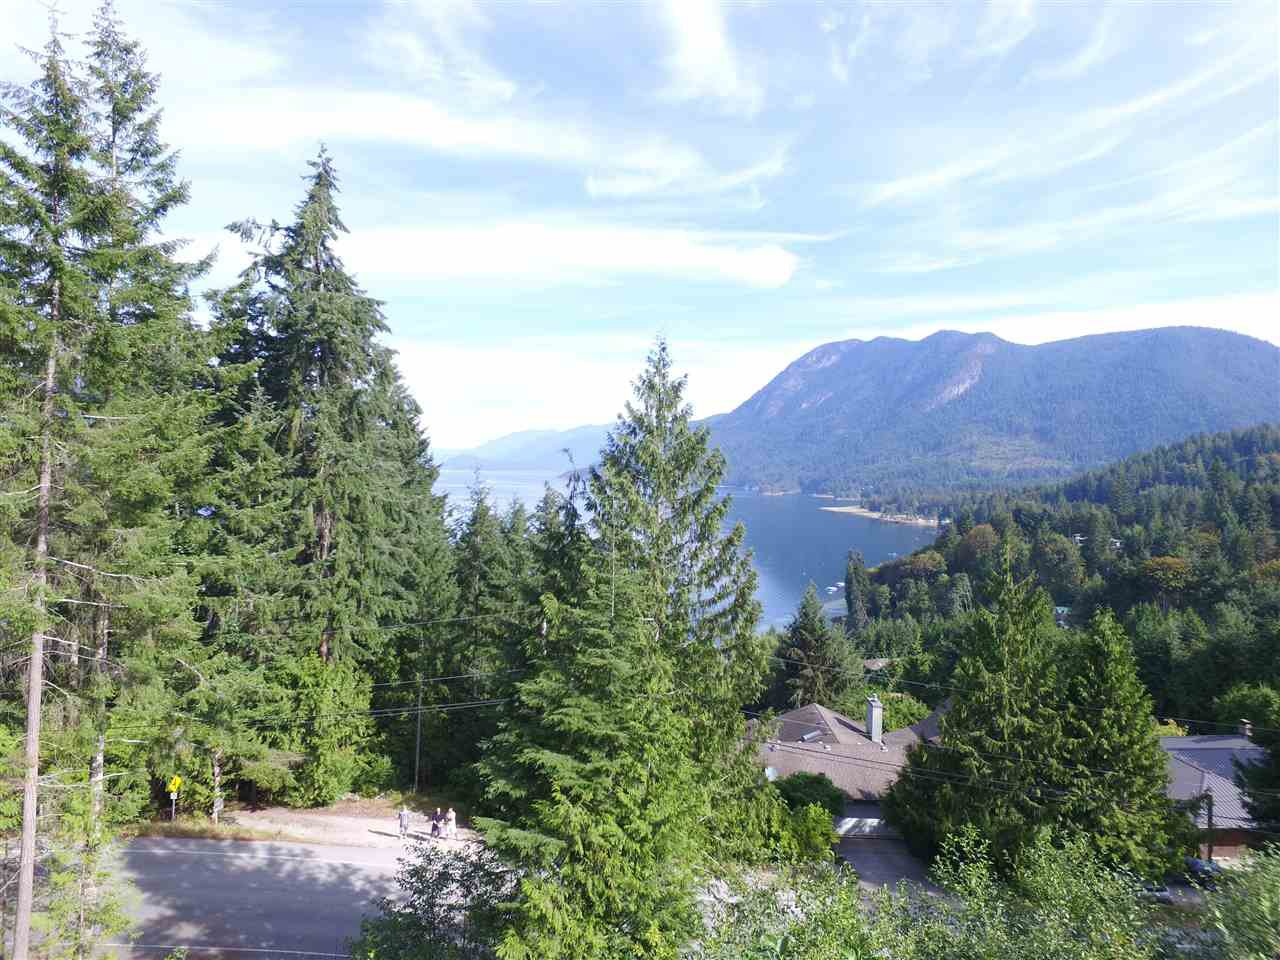 Main Photo: Lot 3 SANDY HOOK Road in Sechelt: Sechelt District Land for sale (Sunshine Coast)  : MLS®# R2100188